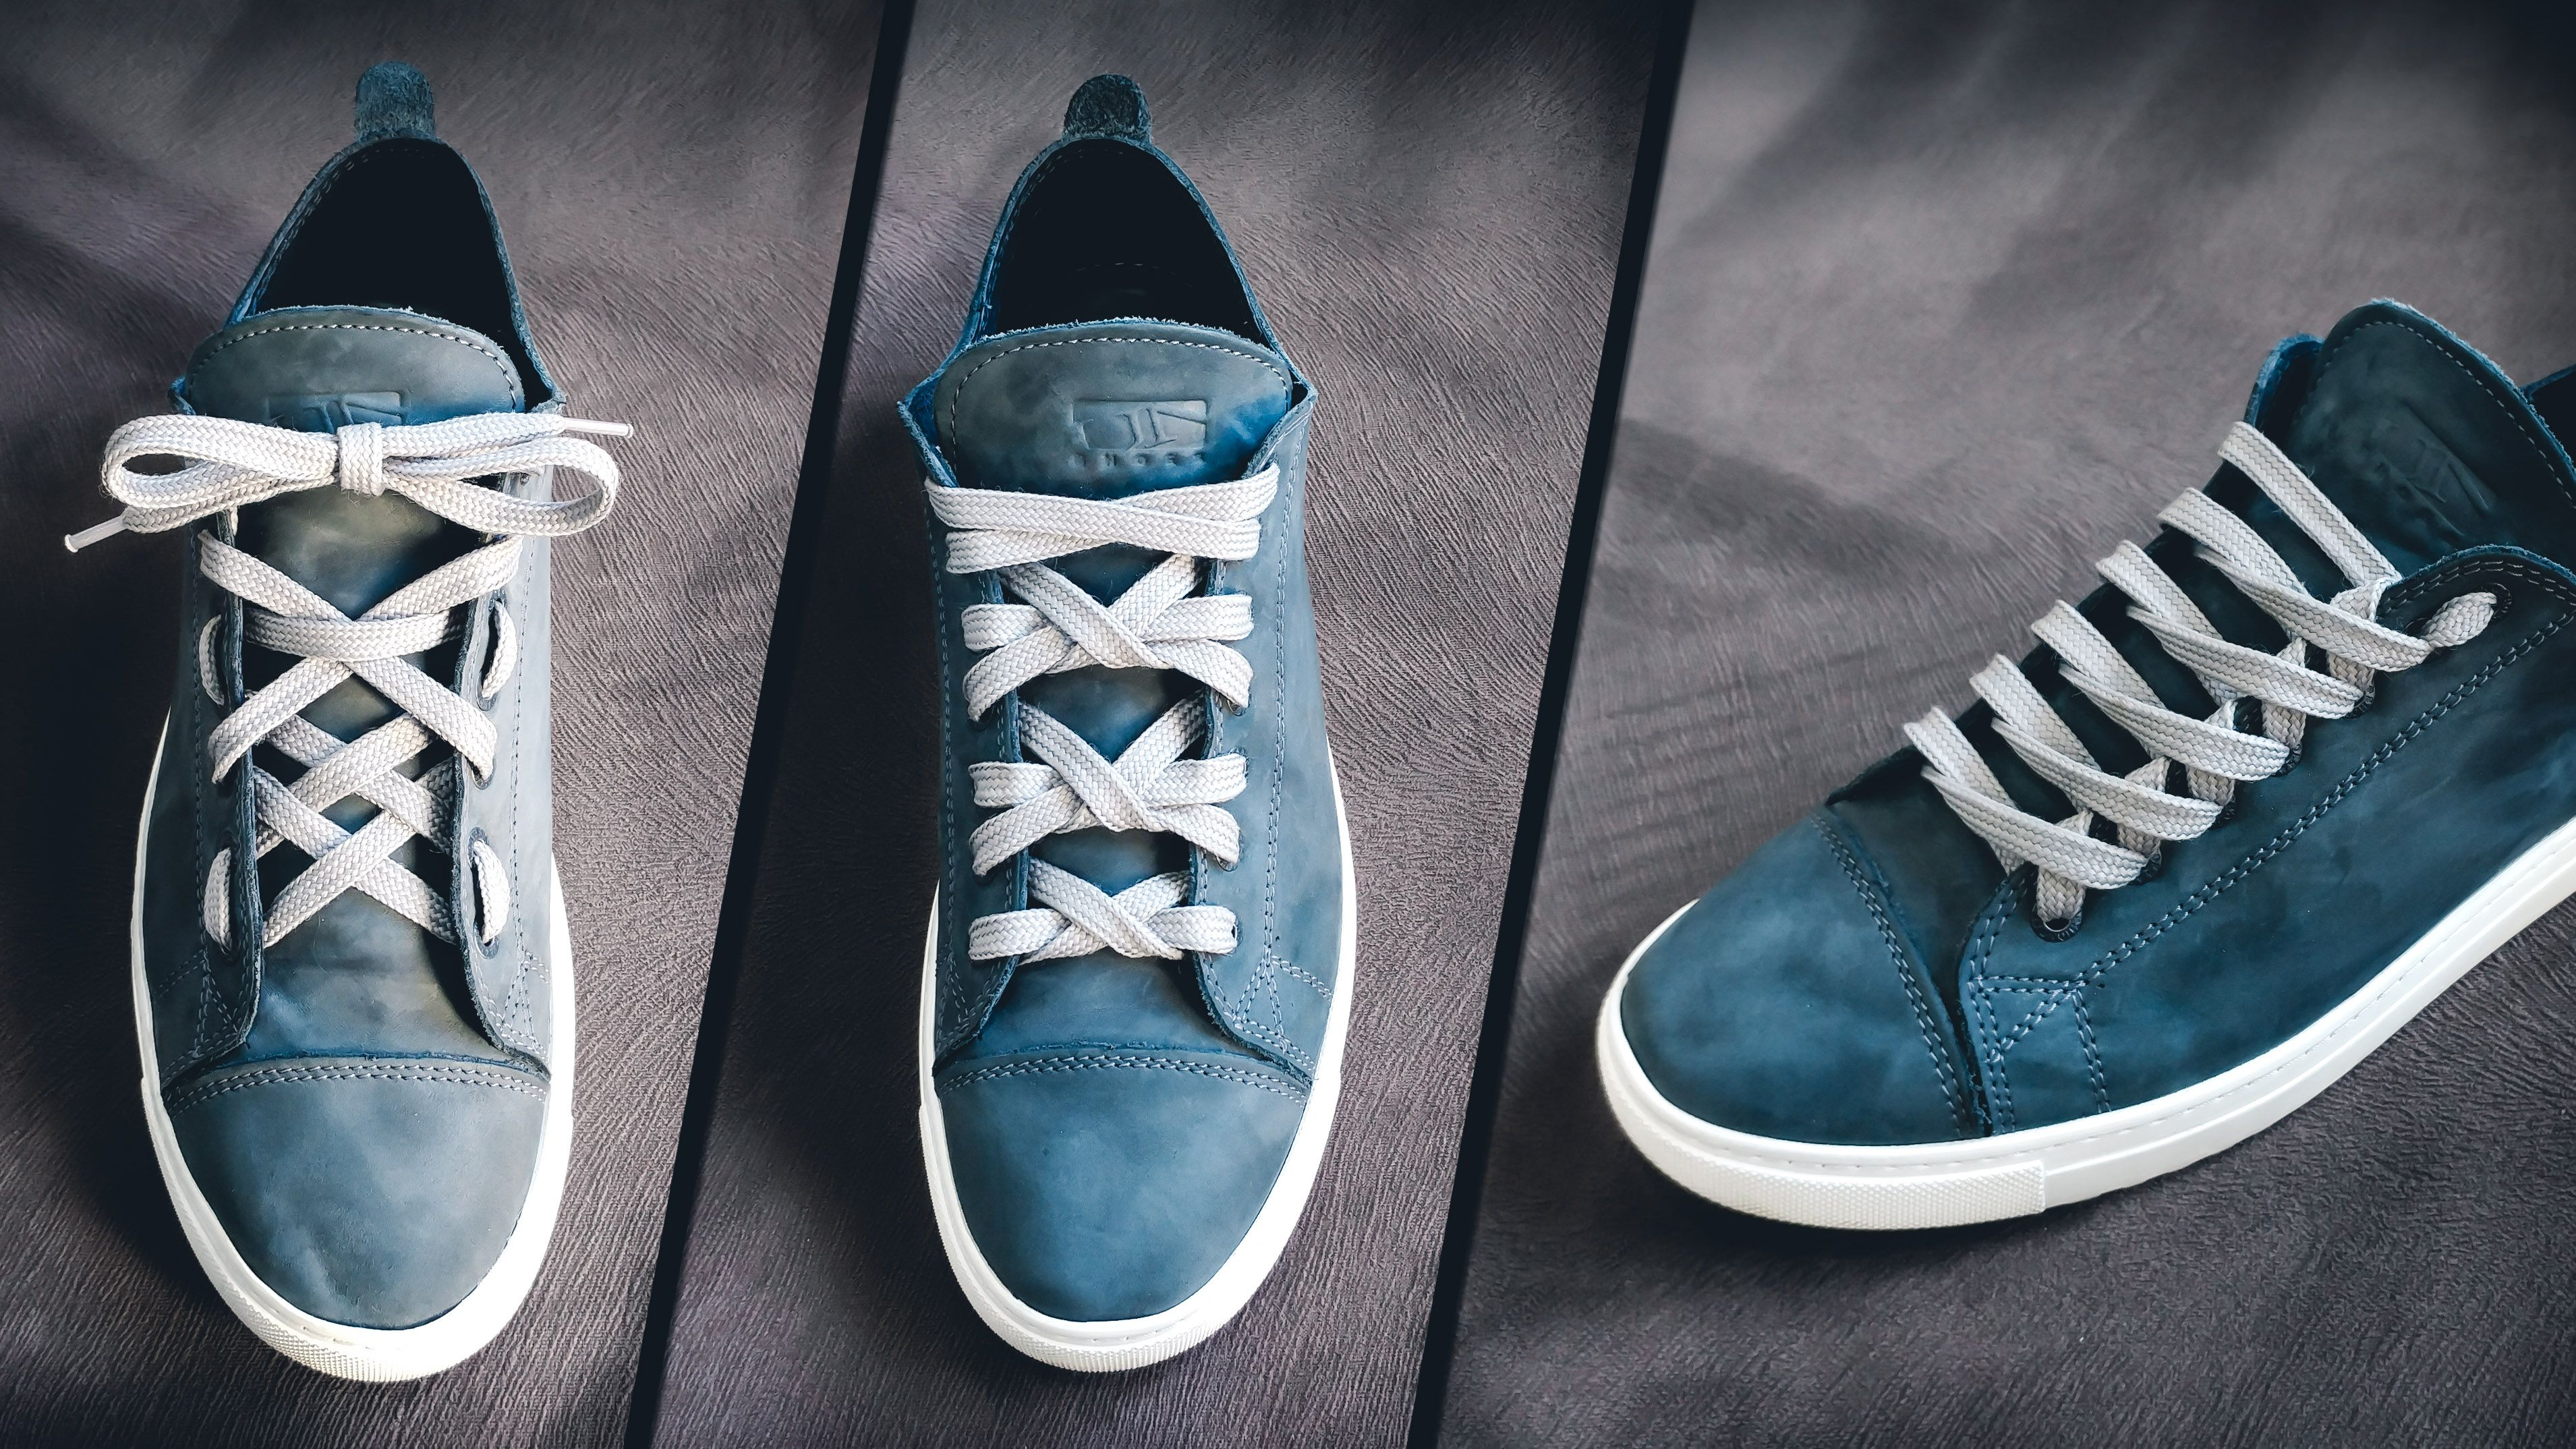 Ways To Lace Tennis Shoes. The 6 best ways to lace your